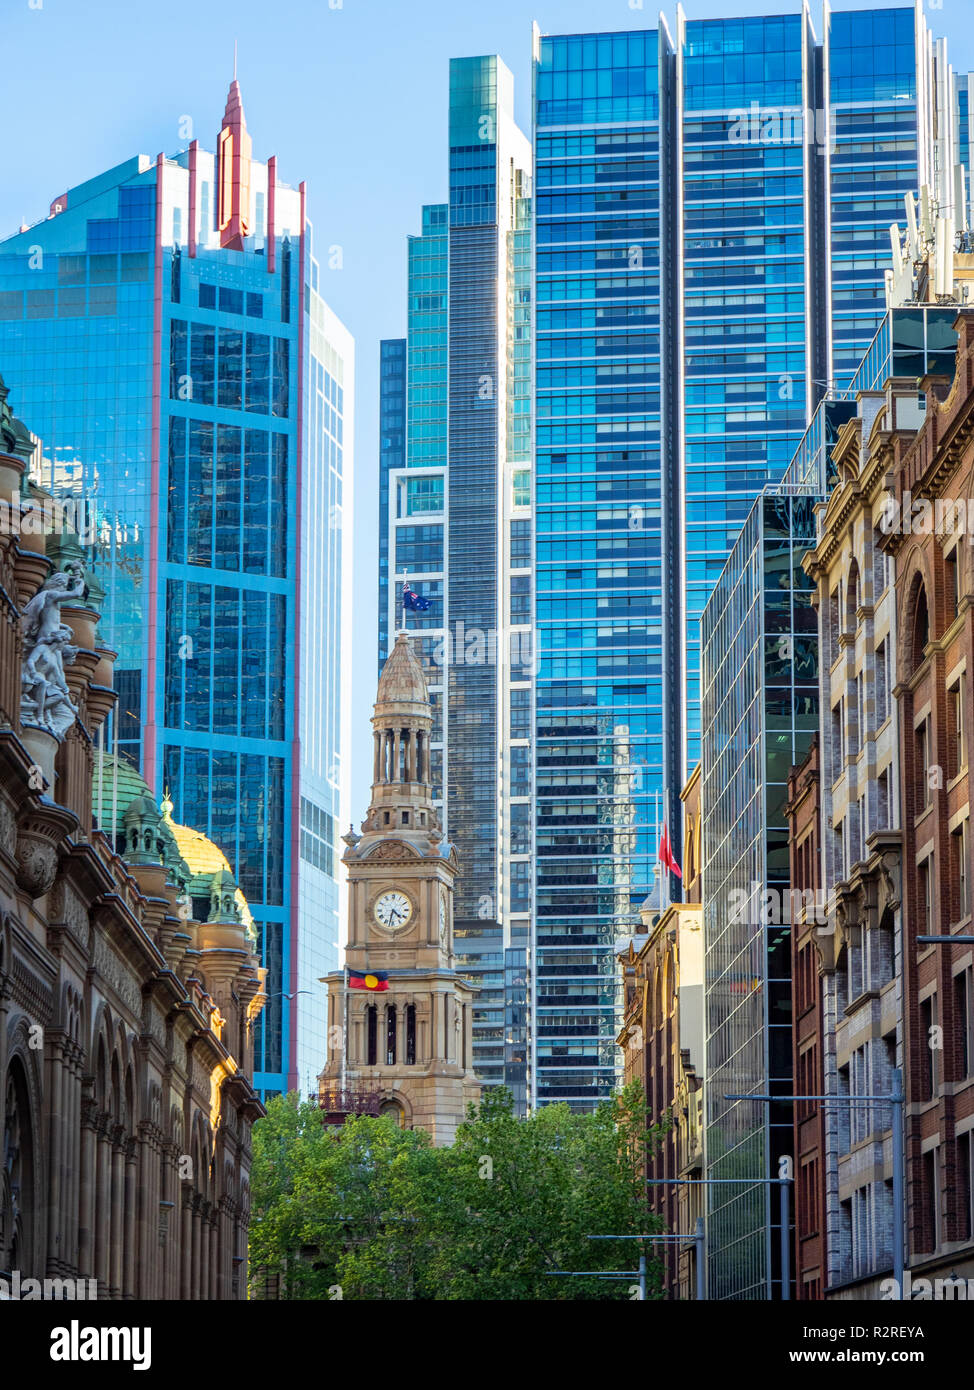 Clock tower of Sydney Town Hall and contrasting architectural styles of modern and old buildings in Sydney NSW Australia. - Stock Image